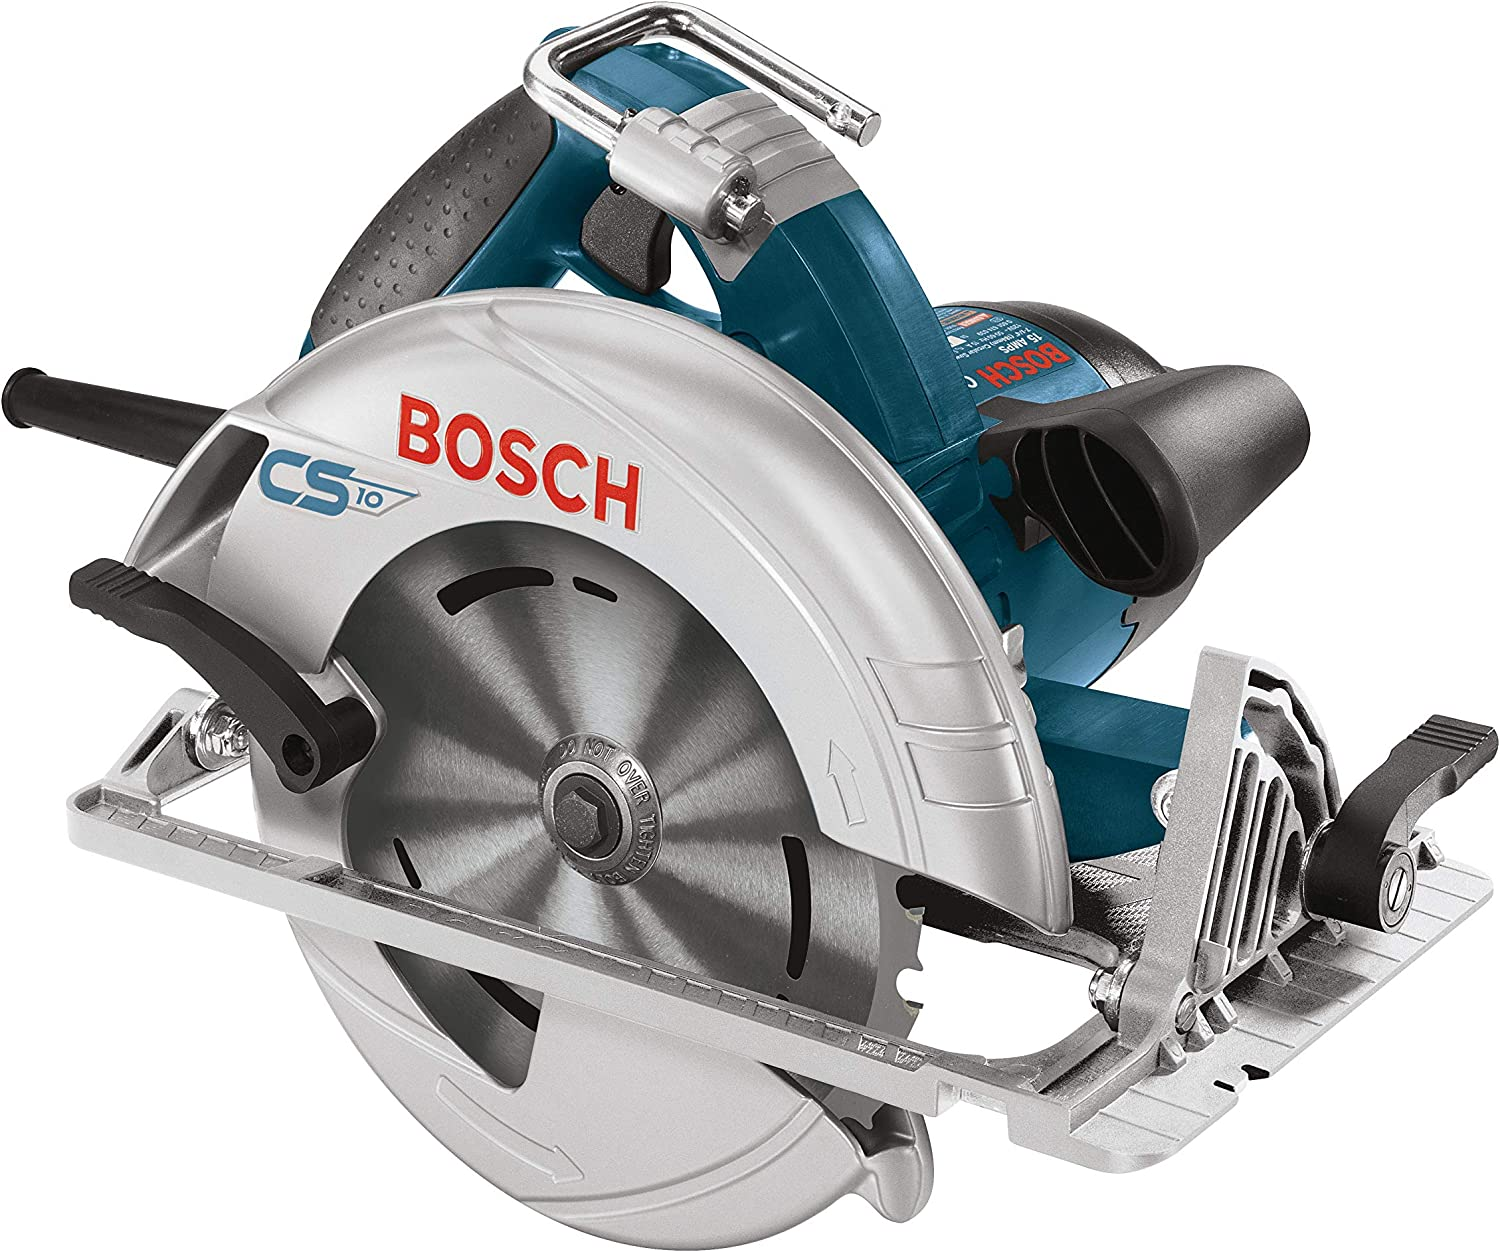 Bosch CS10 Circular Saw Review